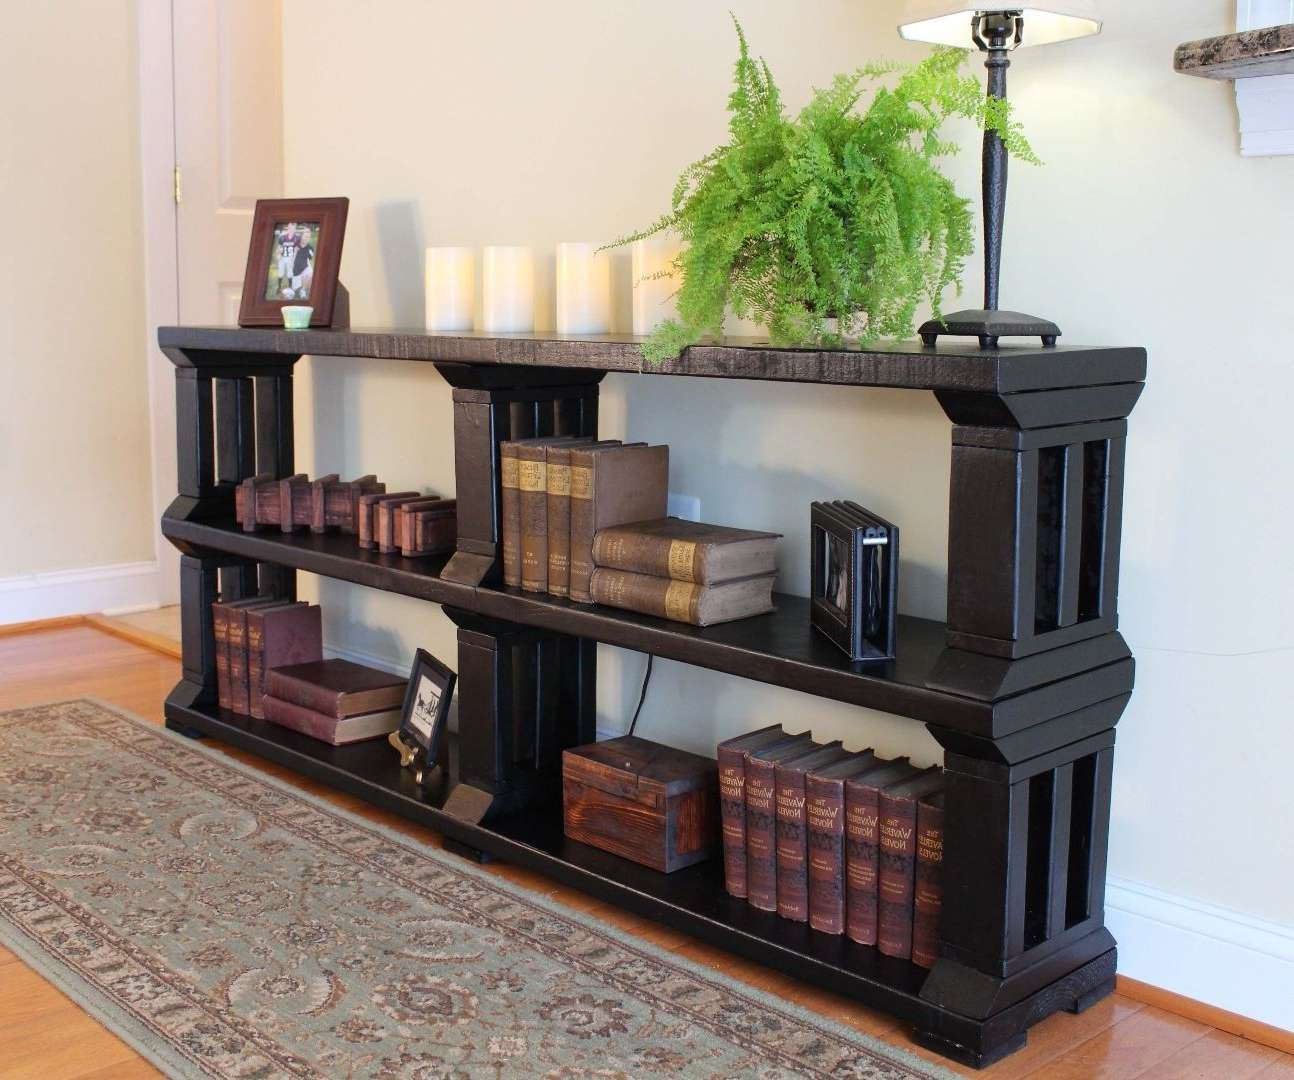 Rustic Book Shelf Or Tv Stand: 13 Steps (With Pictures) Regarding Tv Stands And Bookshelf (View 7 of 15)